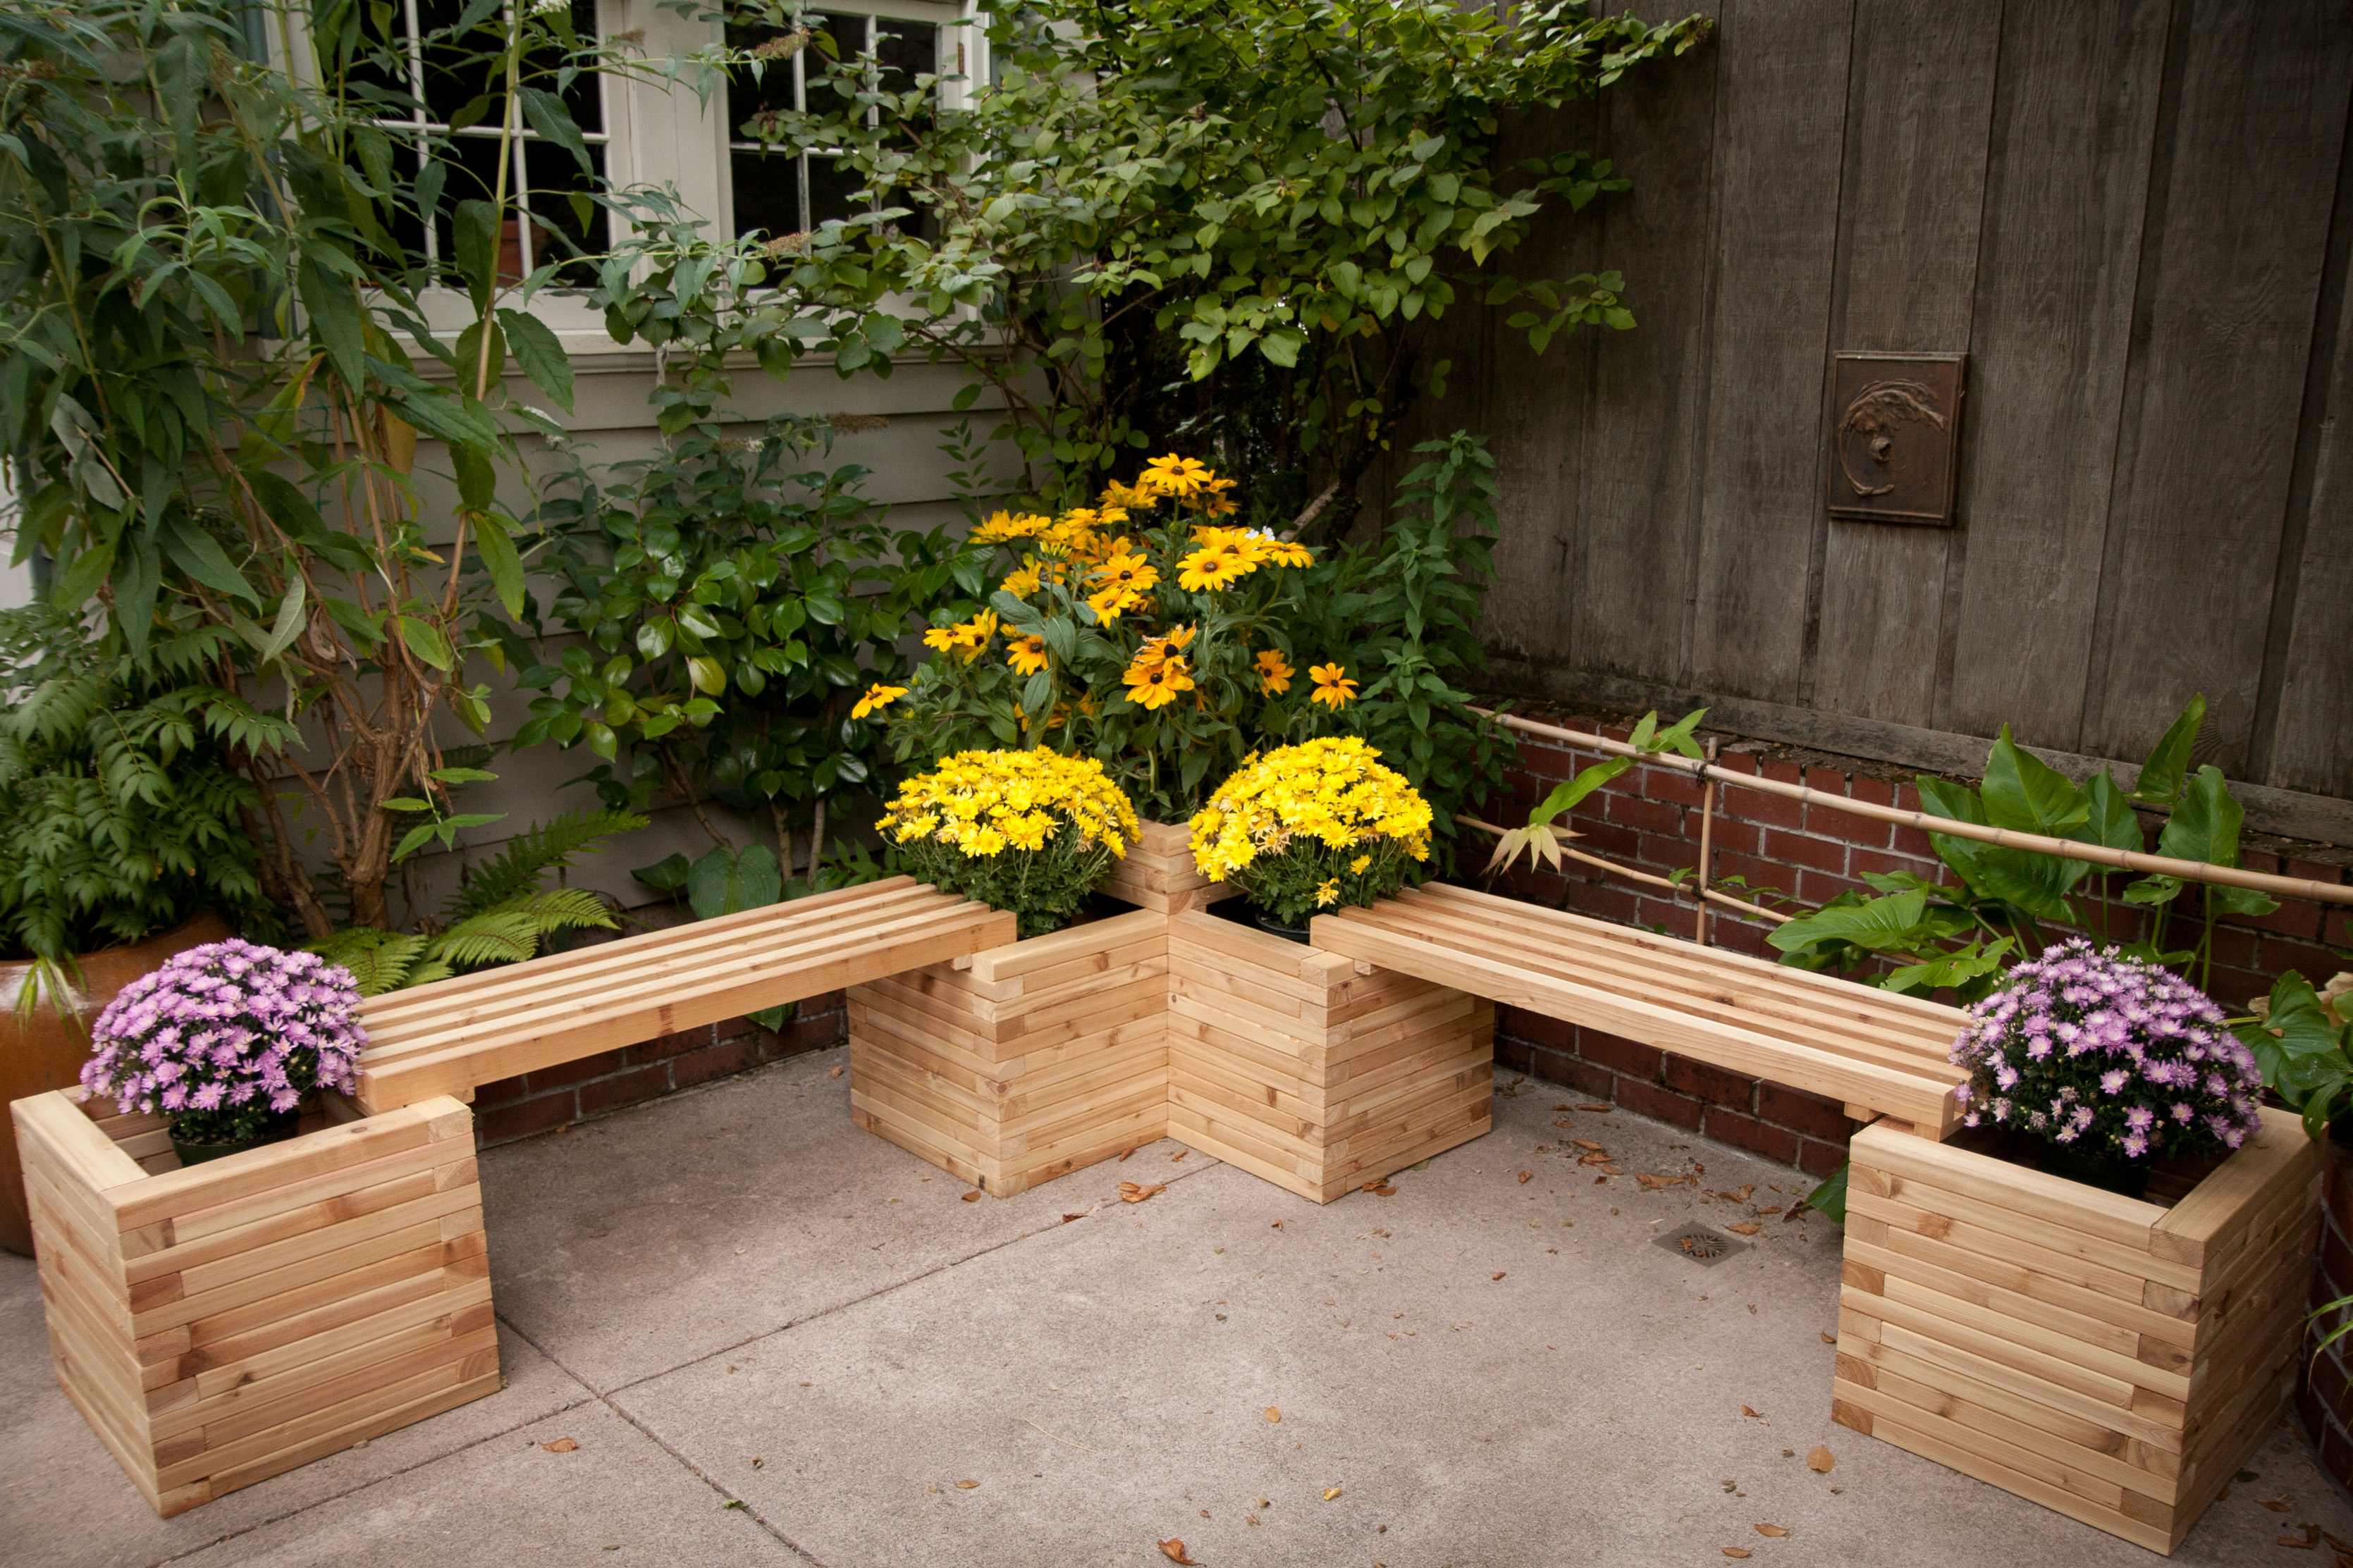 garden benches | the chicken gardener KUQEBCJ